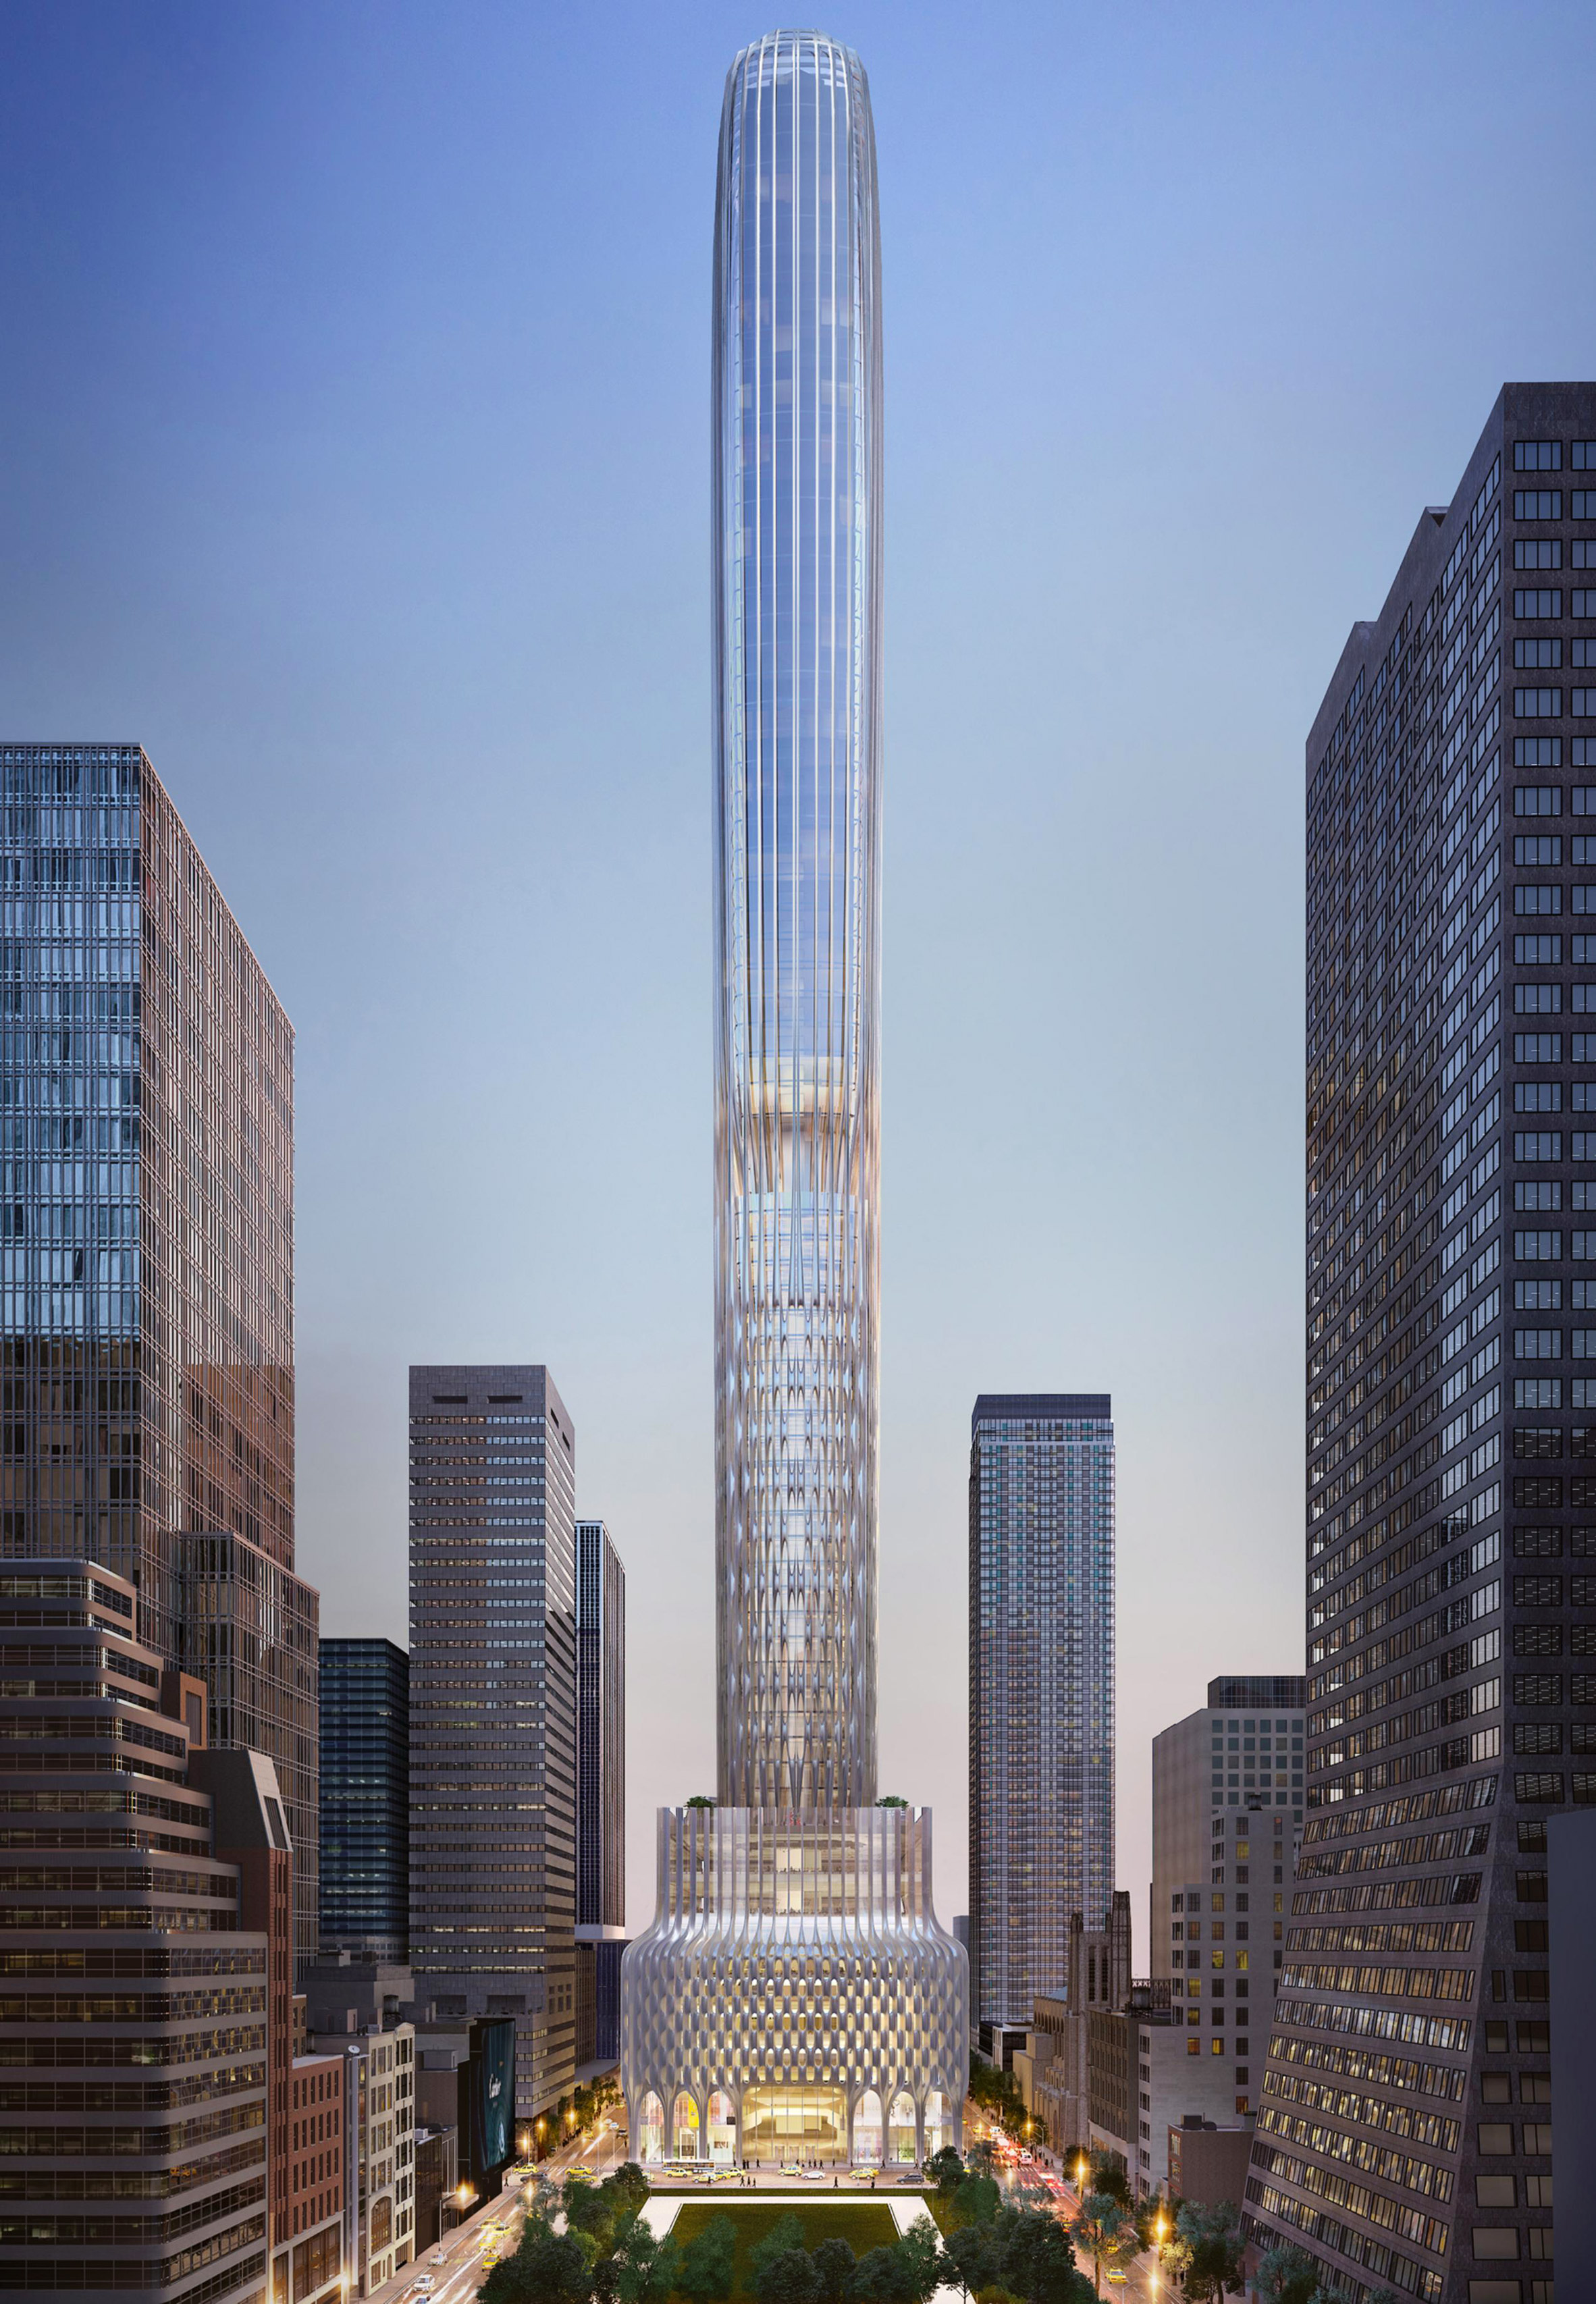 Zaha Hadid Architects' 666 Fifth Avenue skyscraper unlikely to go ahead